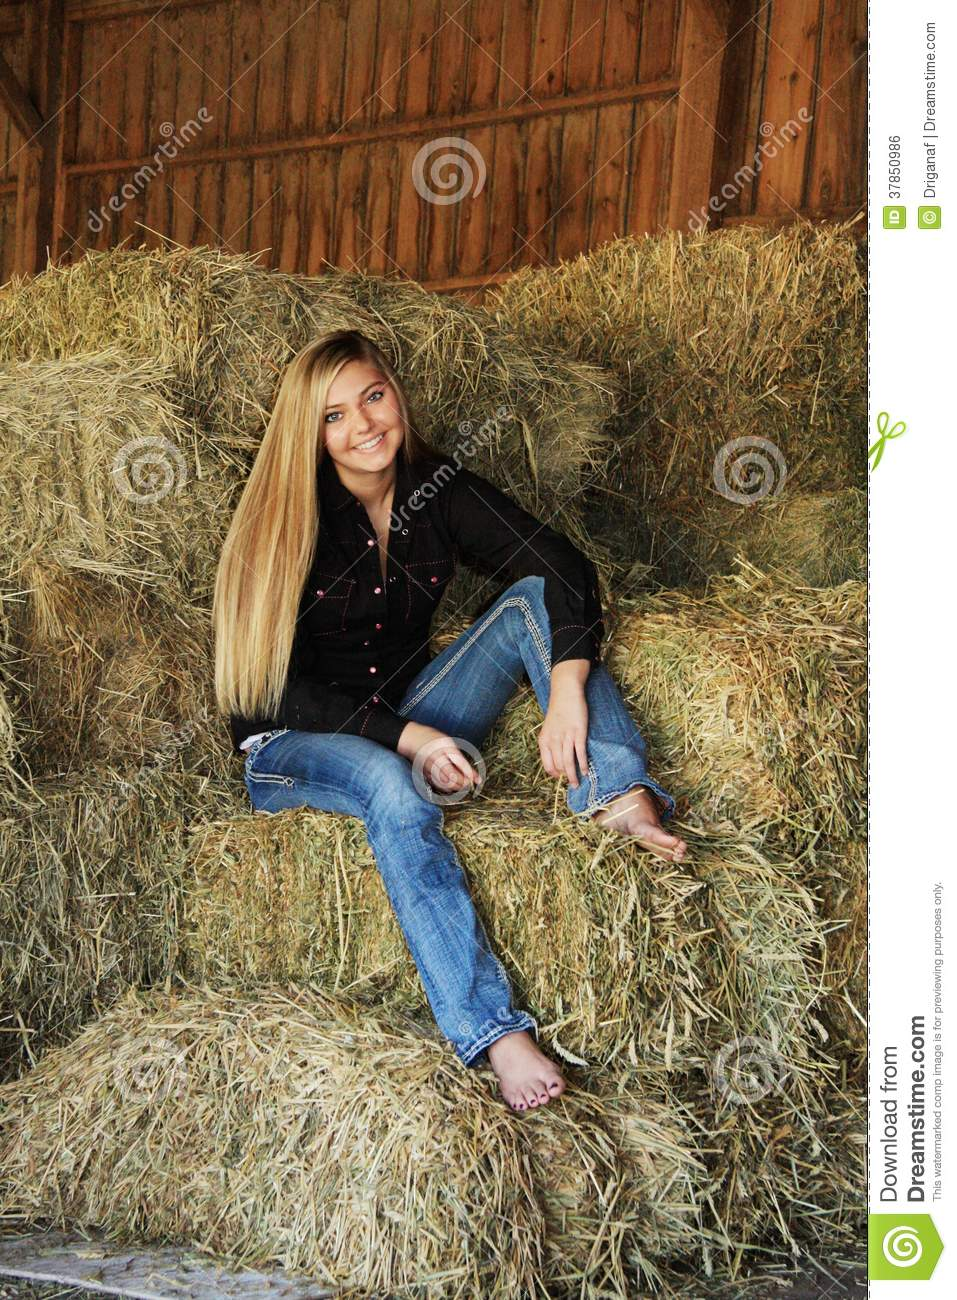 https://thumbs.dreamstime.com/z/pretty-blonde-high-school-senior-country-girl-37850986.jpg